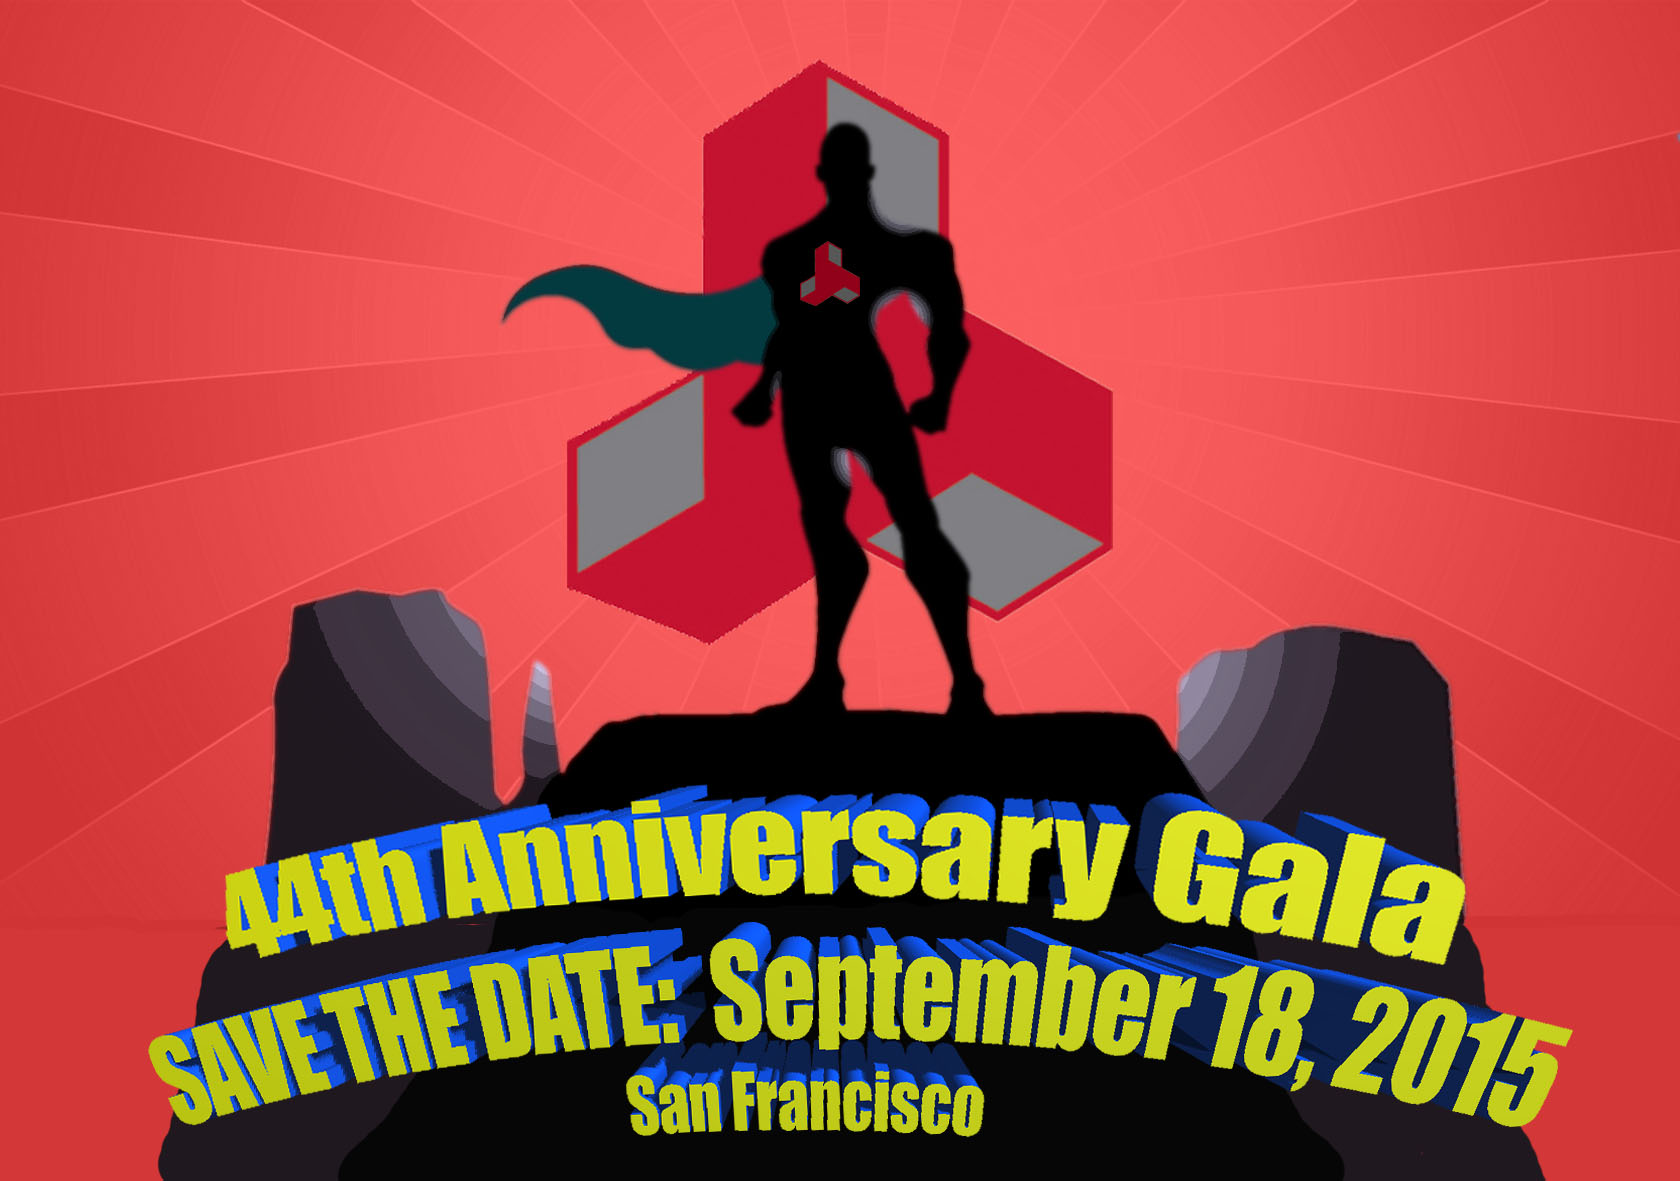 SAVE THE DATE for our 44th Anniversary Gala:  September 18, 2015